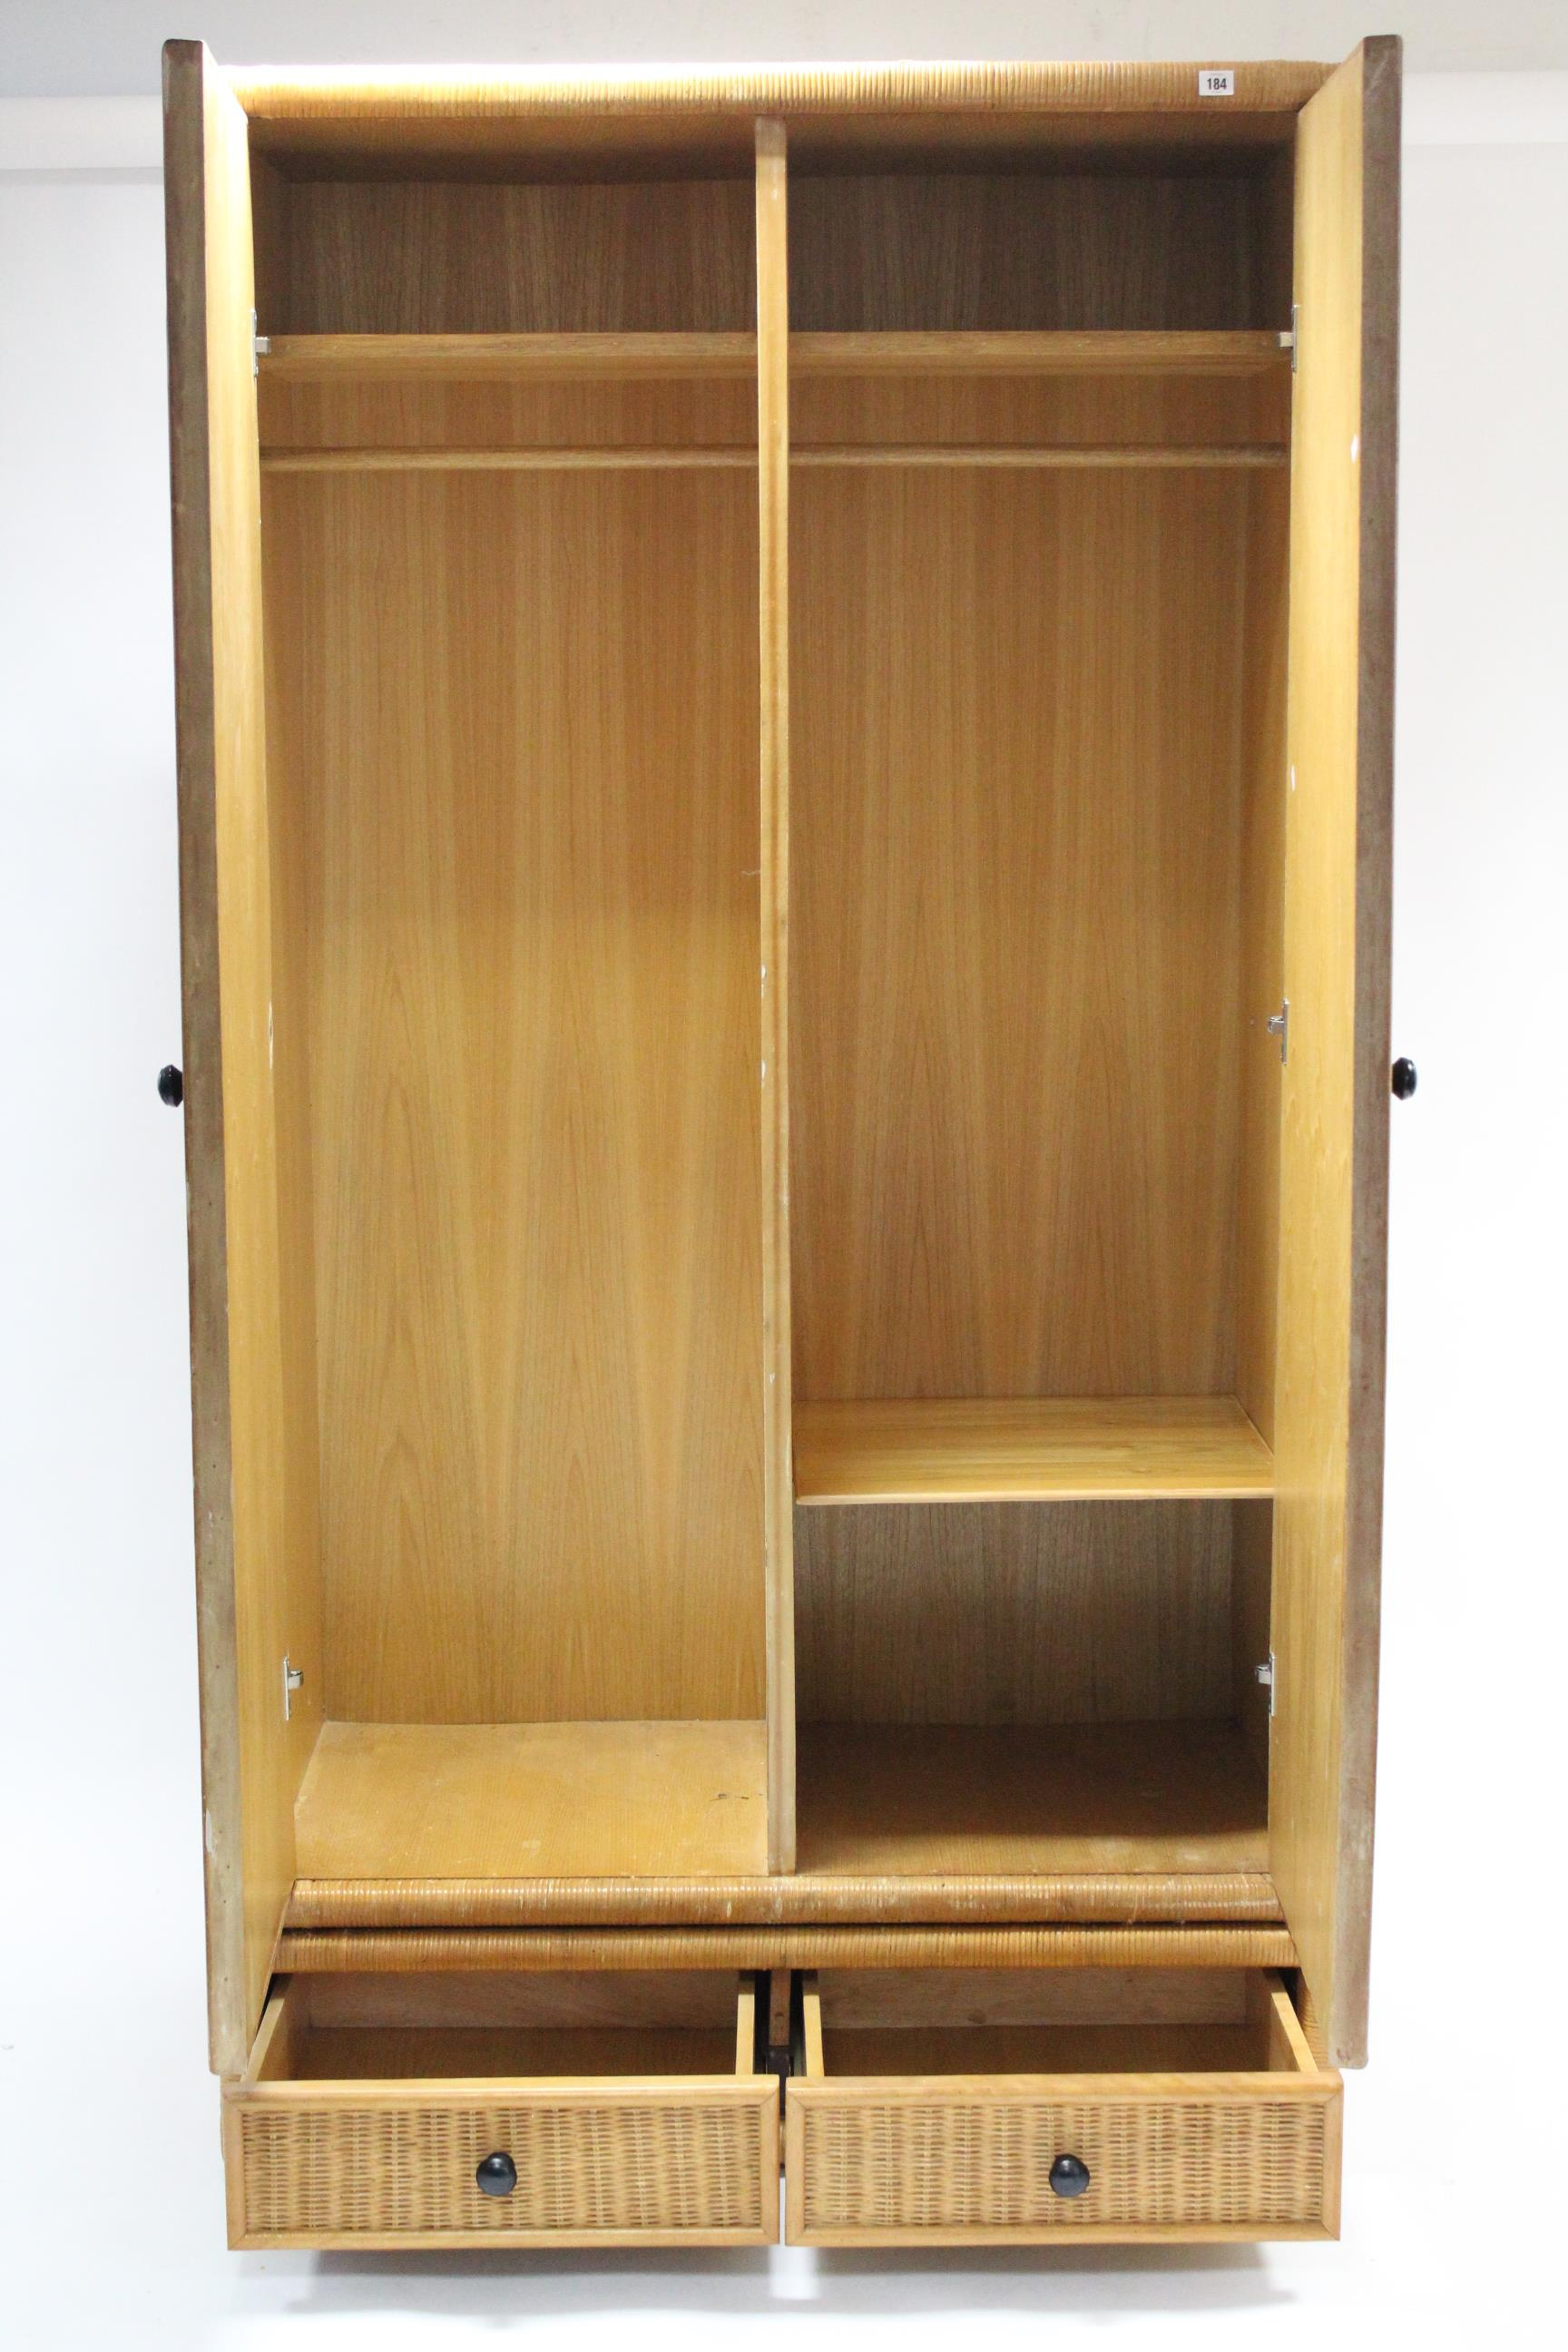 "Lot 184 - A rattan-covered twin-door wardrobe, 43¼"" wide x 69½"" high."